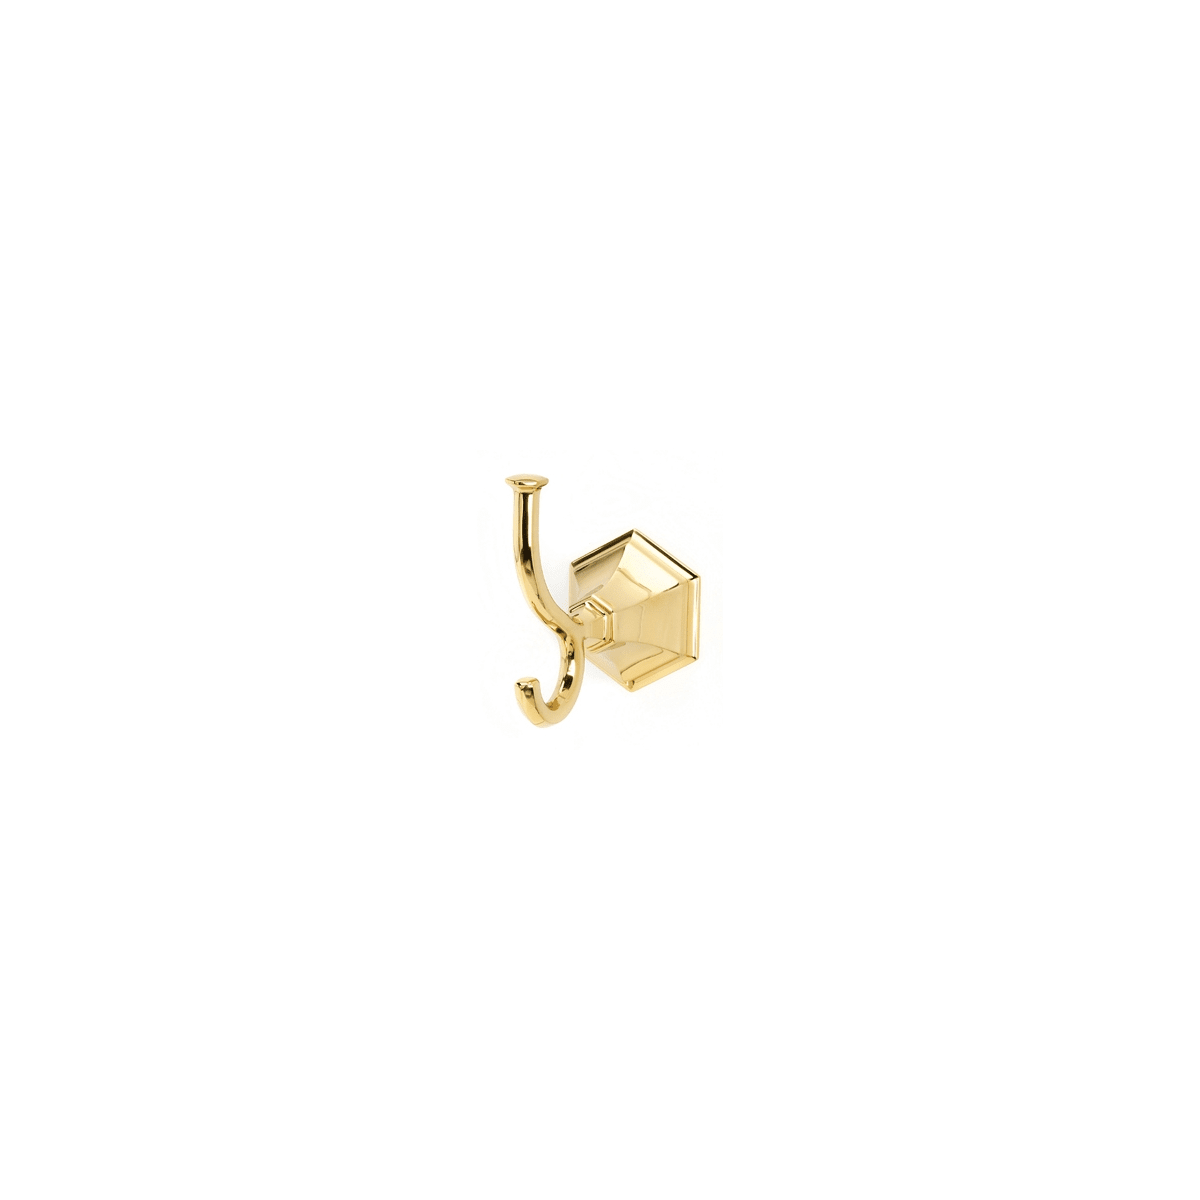 Alno Nicole 4-1/16 Inch Tall Double Prong Robe Hook